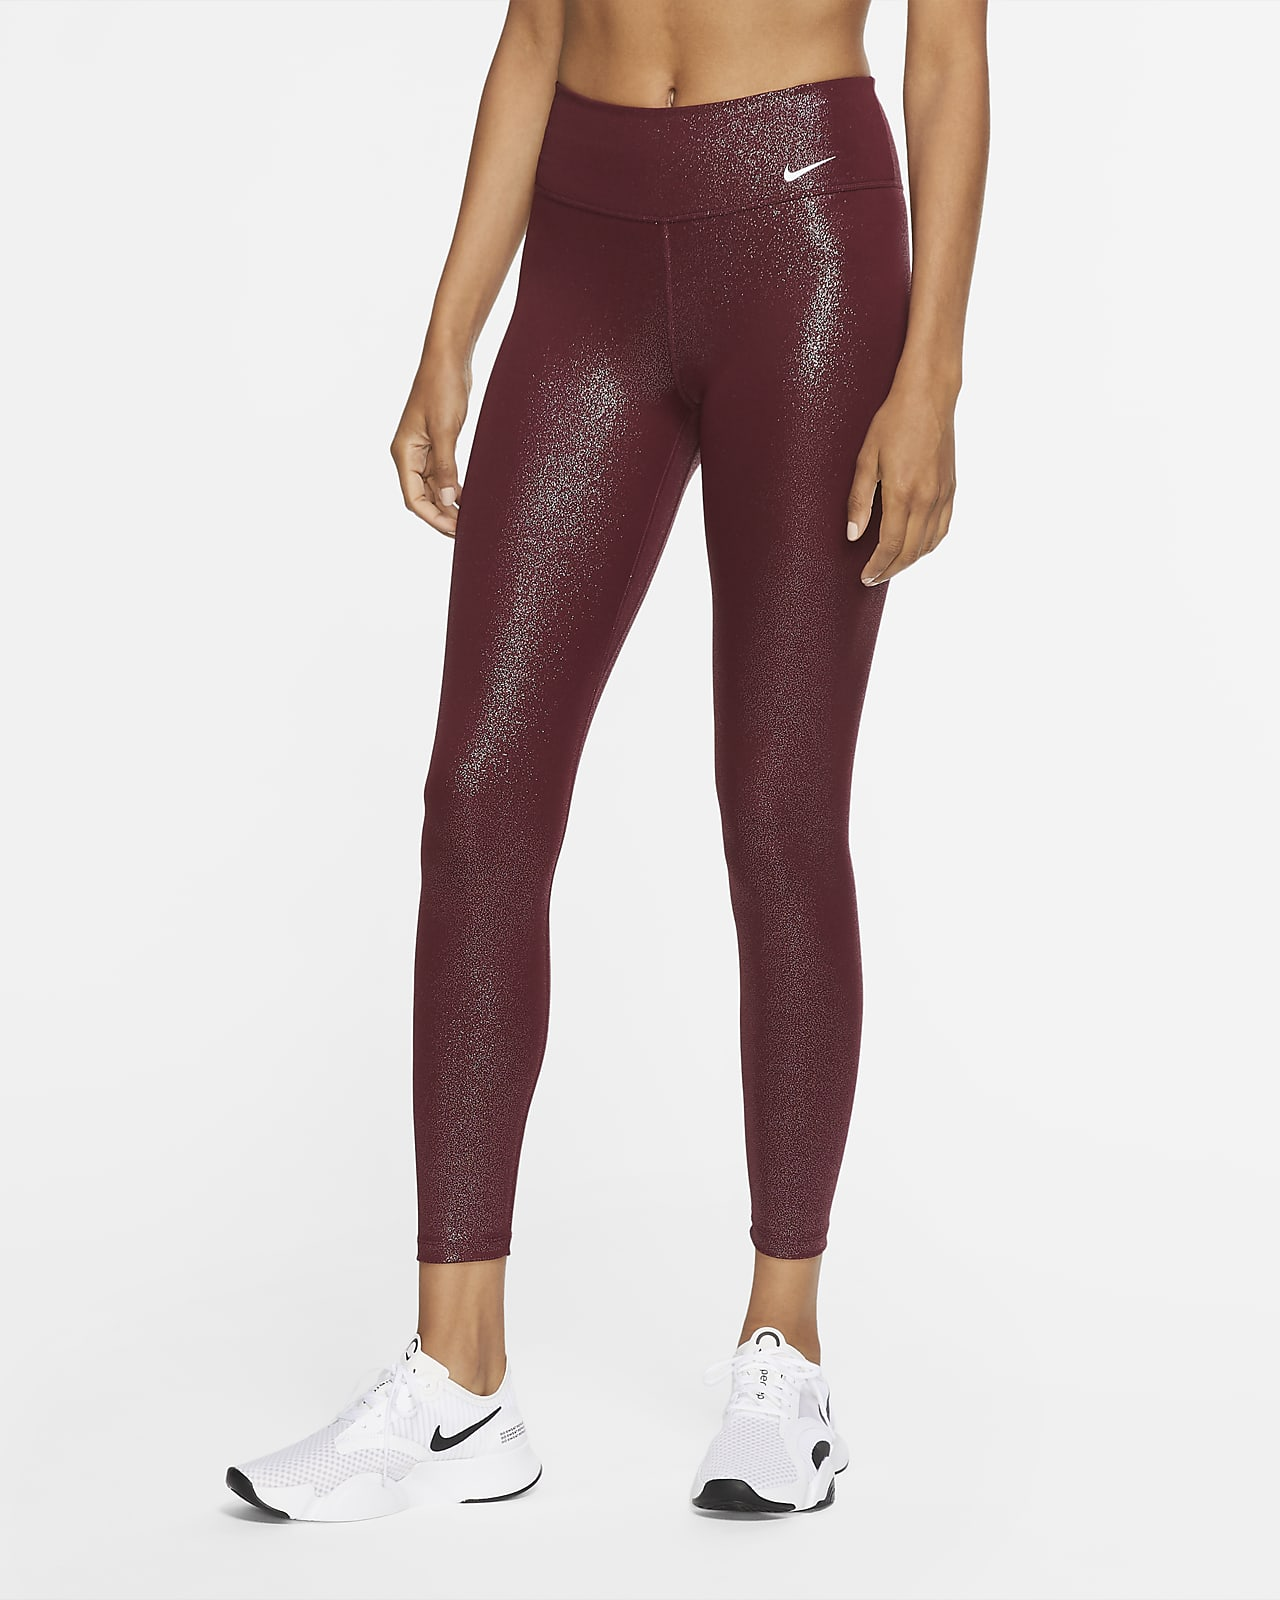 Nike One Women's Sparkle 7/8 Leggings